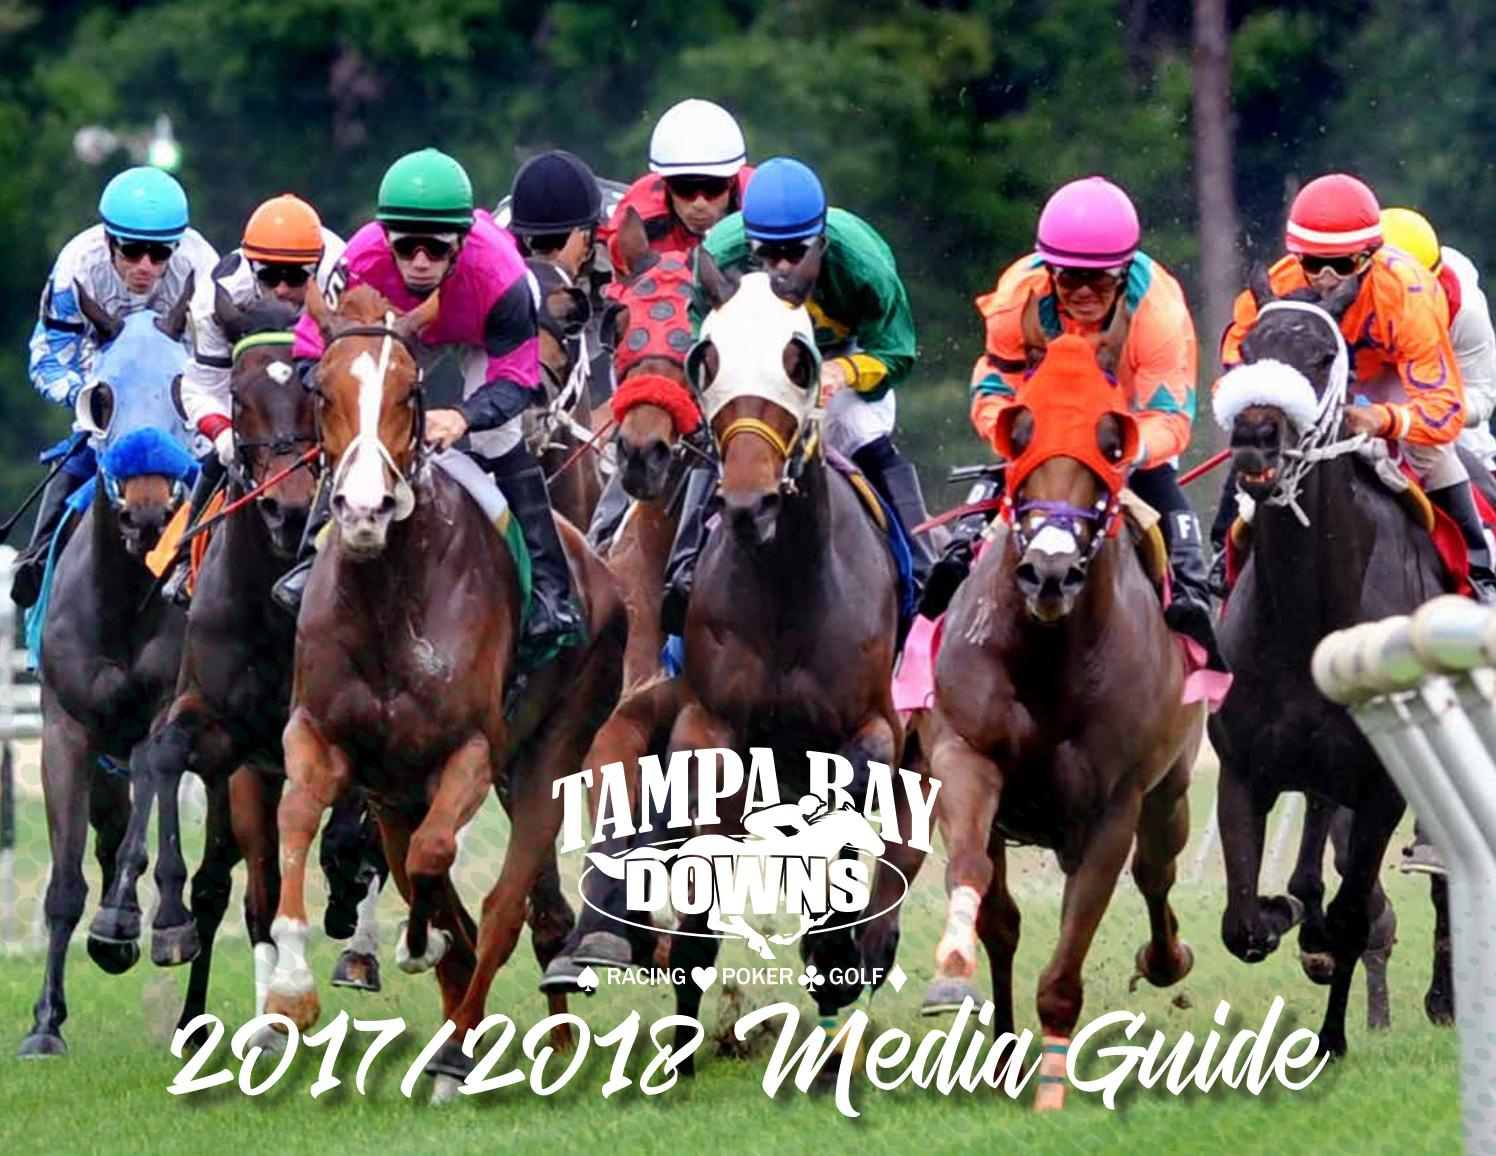 Tampa Bay Downs Media Guide 2017 2018Strops Marketing With Regard To Tampa Bay Downs Race Track Calendar